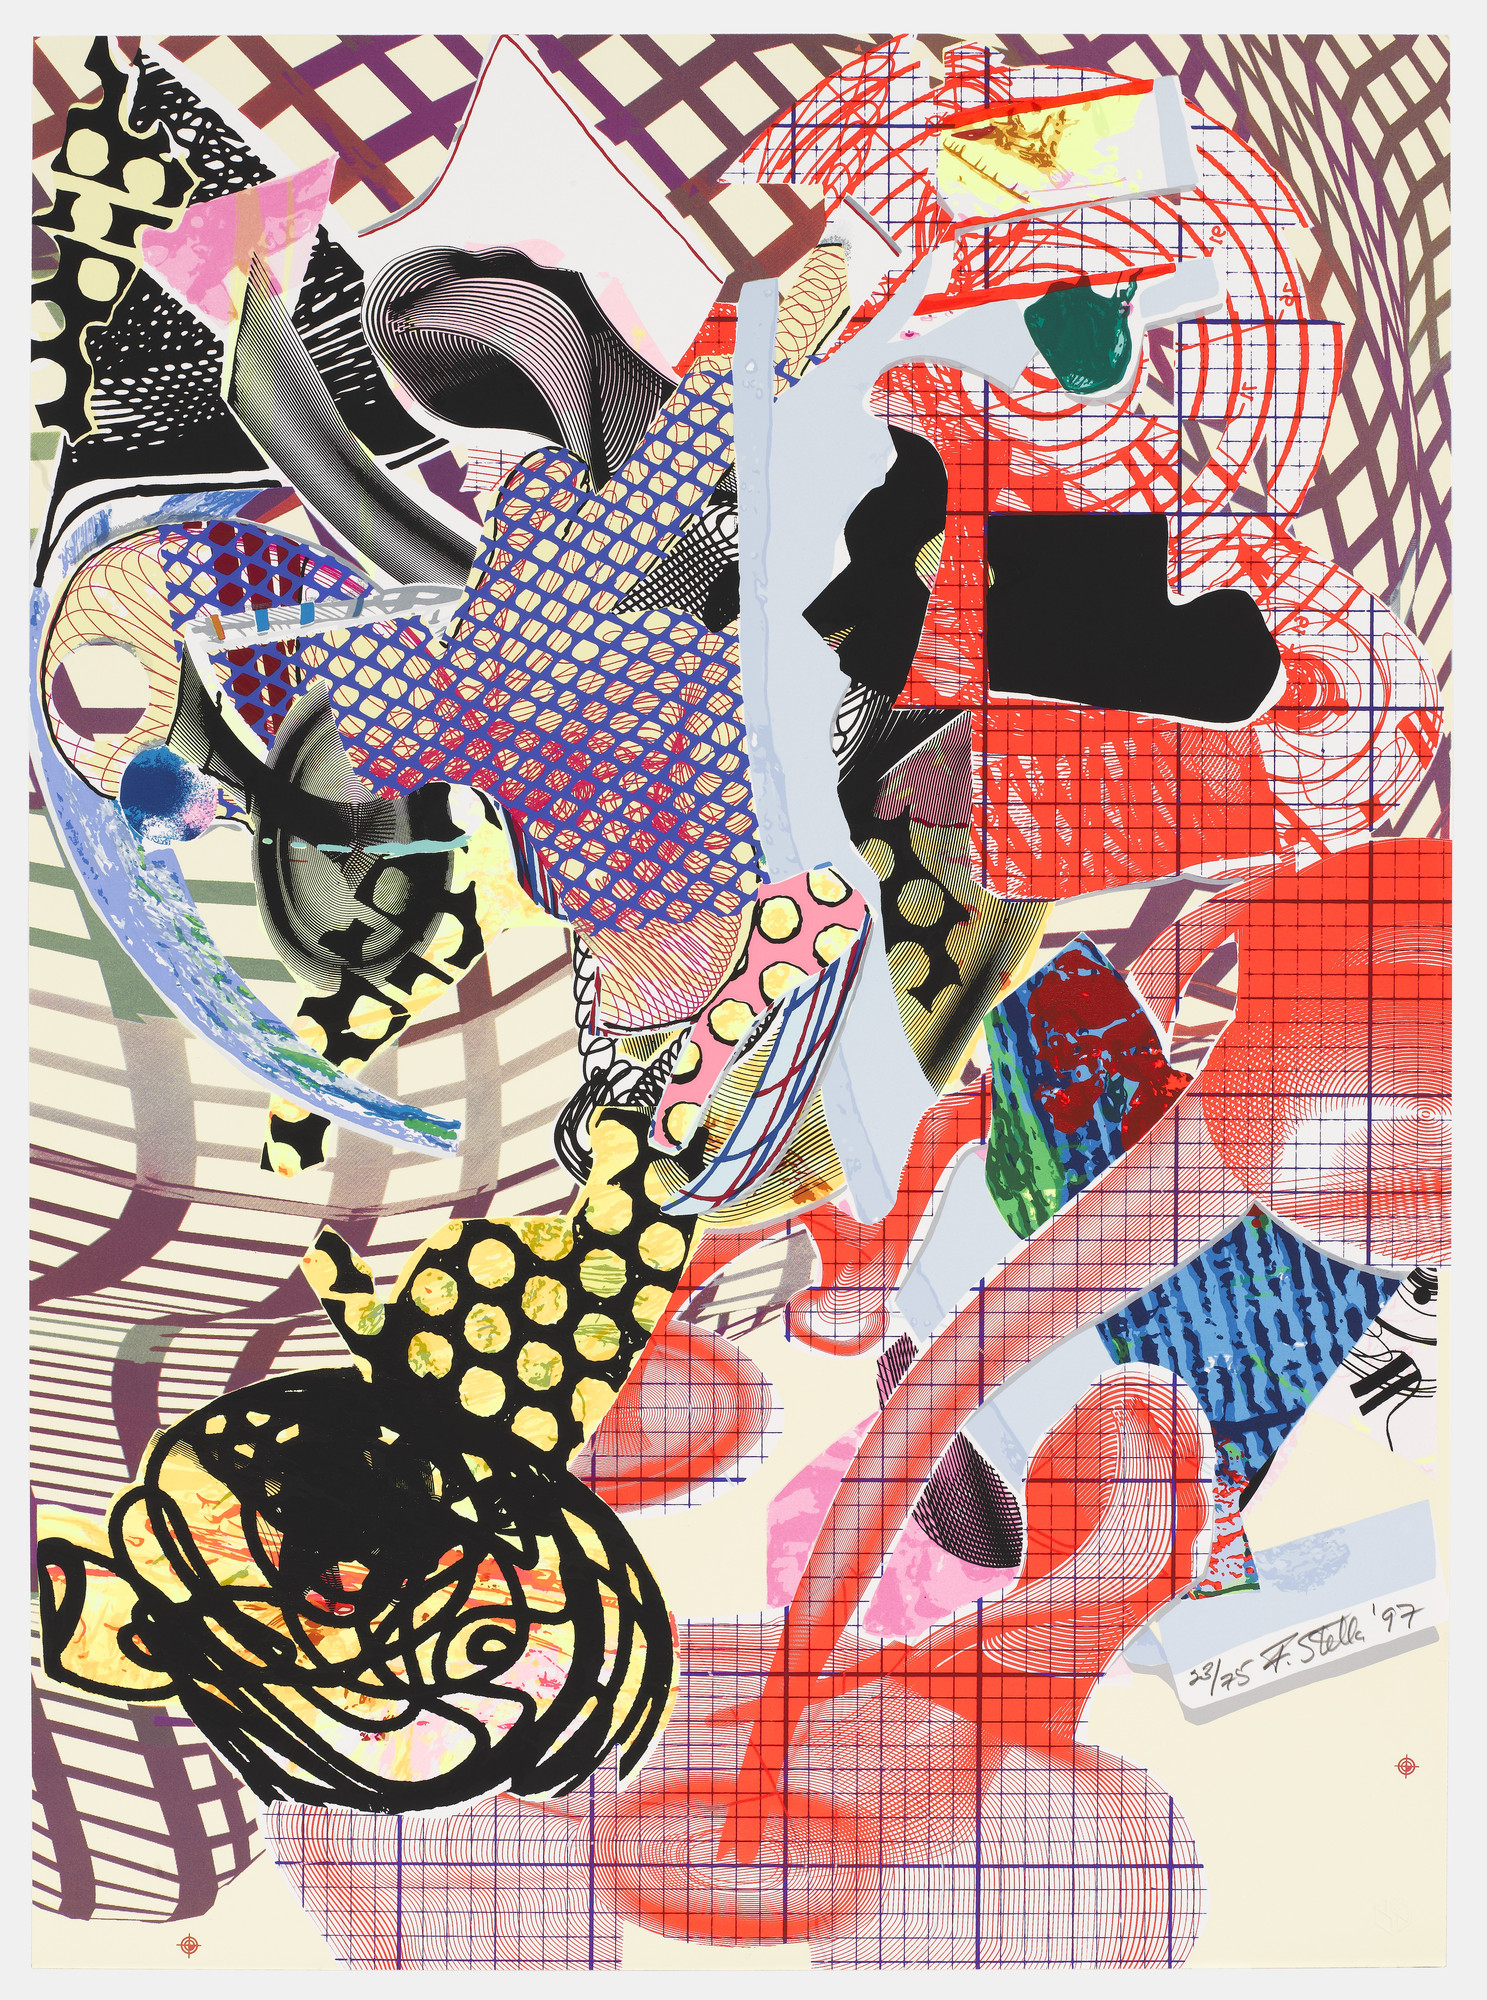 Frank Stella. Coxuria from The Geldzahler Portfolio. 1997, published 1998